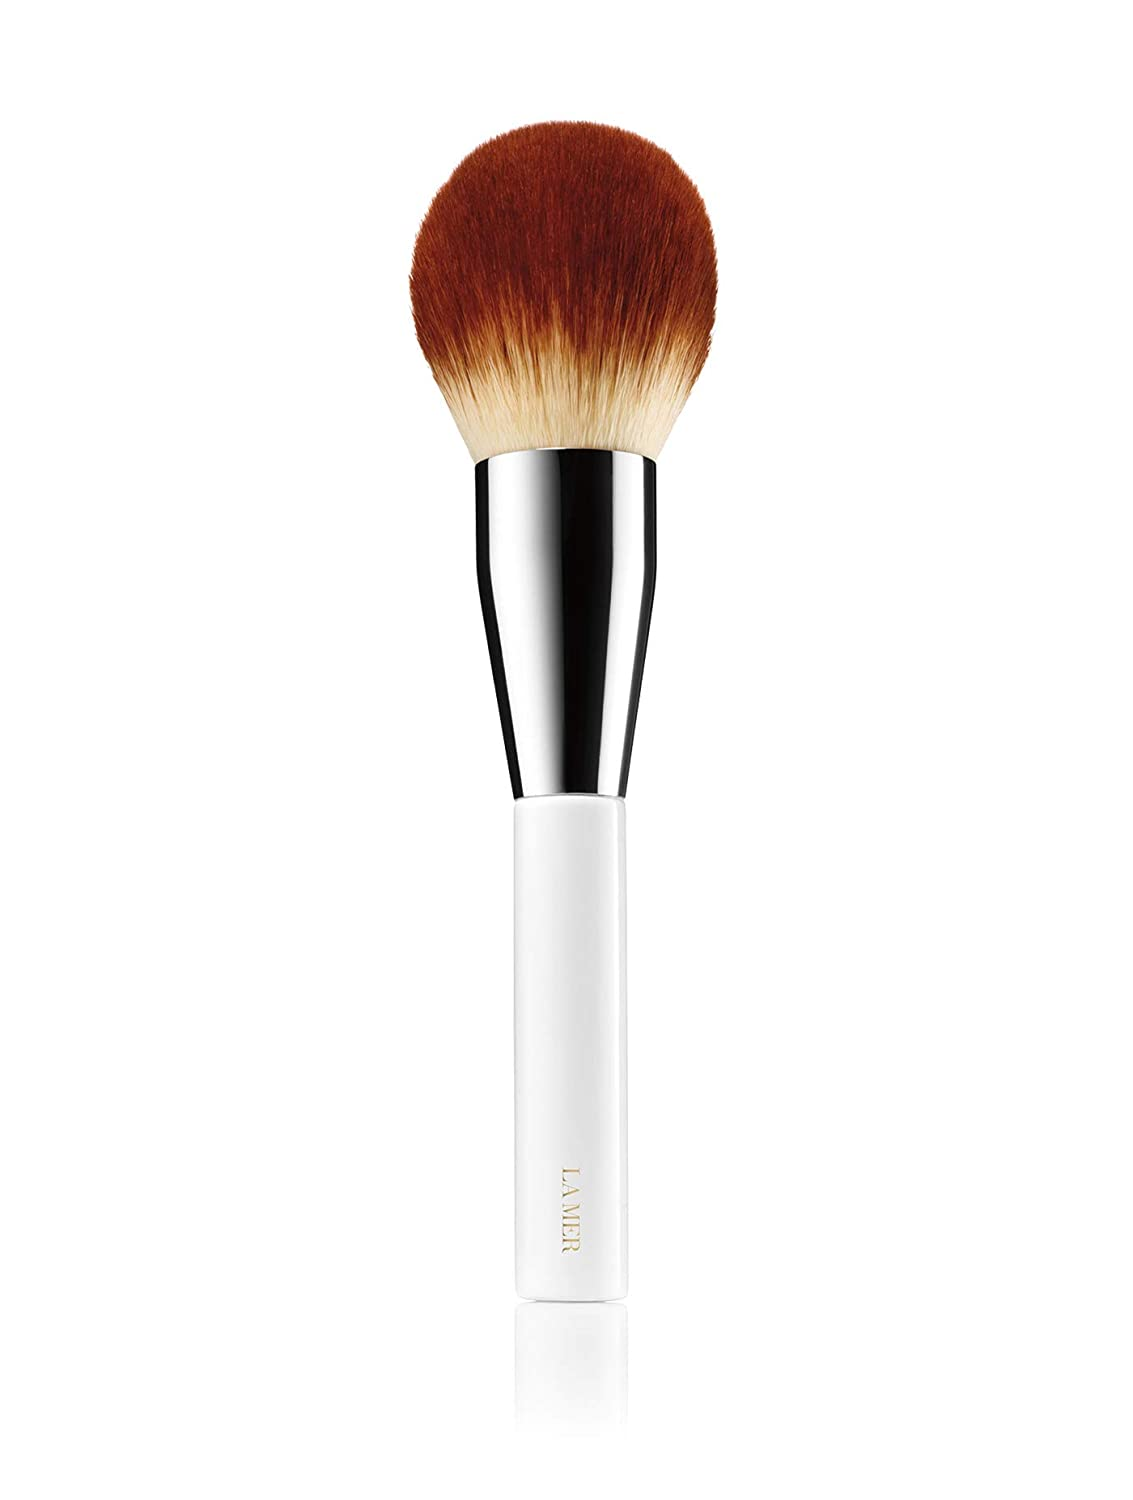 B002LA5412 La Mer The Powder Brush - 61N3c5z0xfL._SL1500_